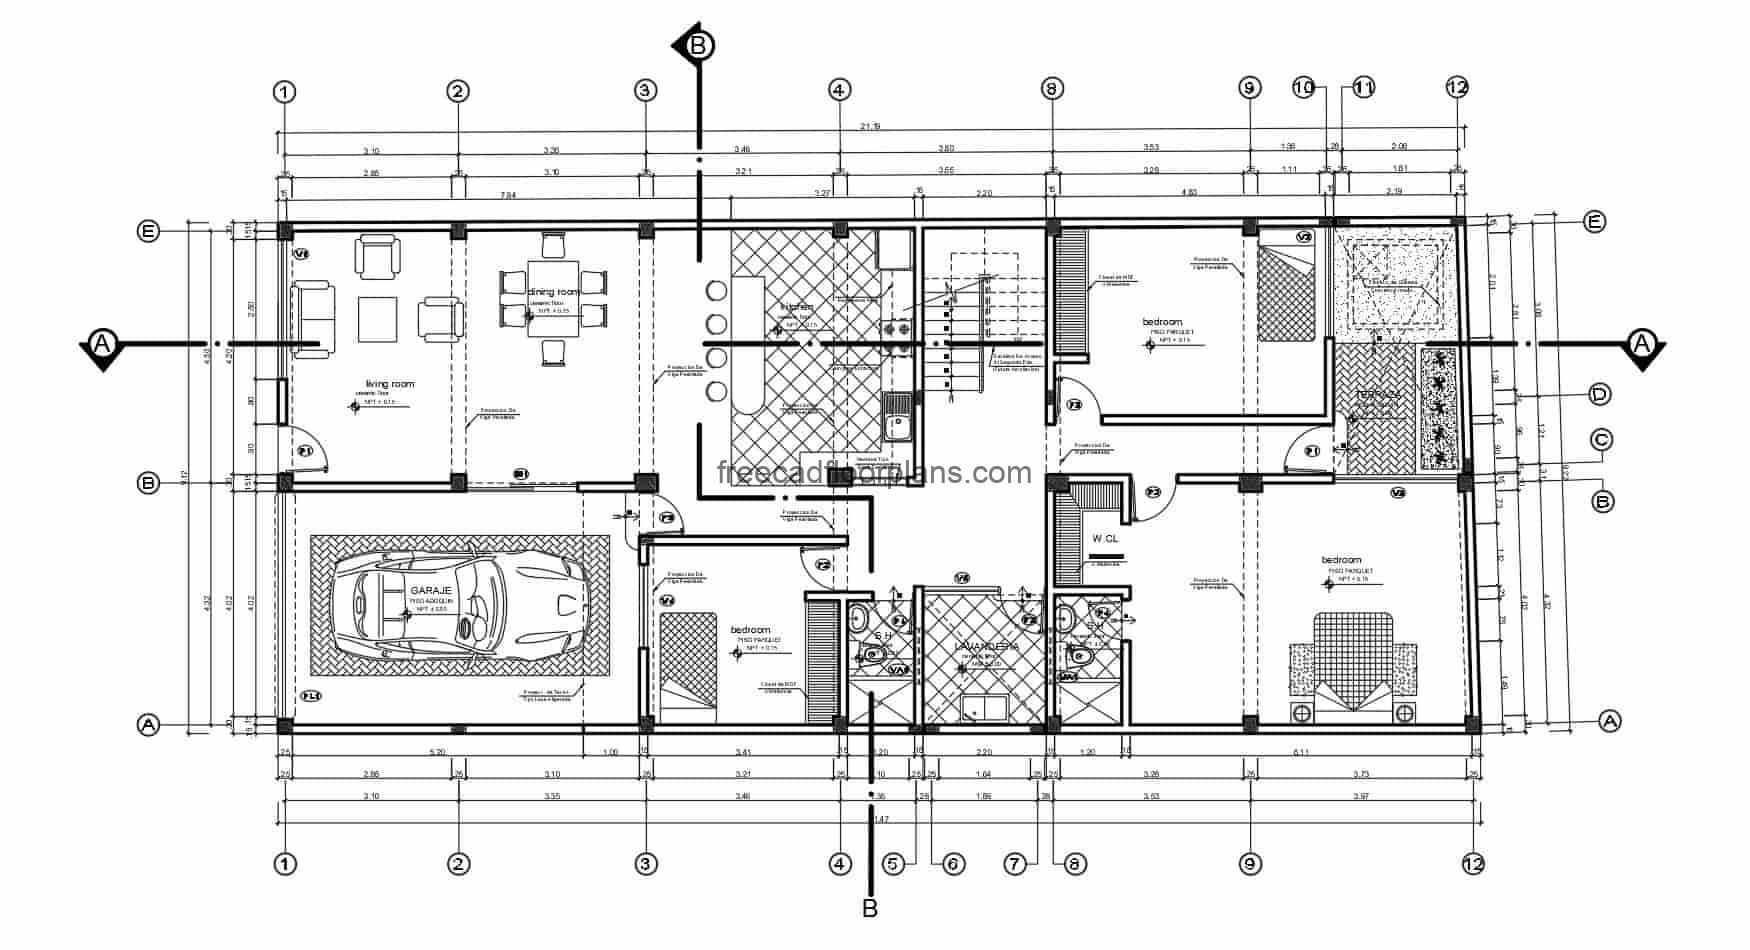 Single-level residence plan with three bedrooms, basic distribution with garage for one vehicle, living room, kitchen with breakfast area, dining room, laundry area and rear terrace. CAD Dwg drawings of Autocad 2D for free download with interior blocks.